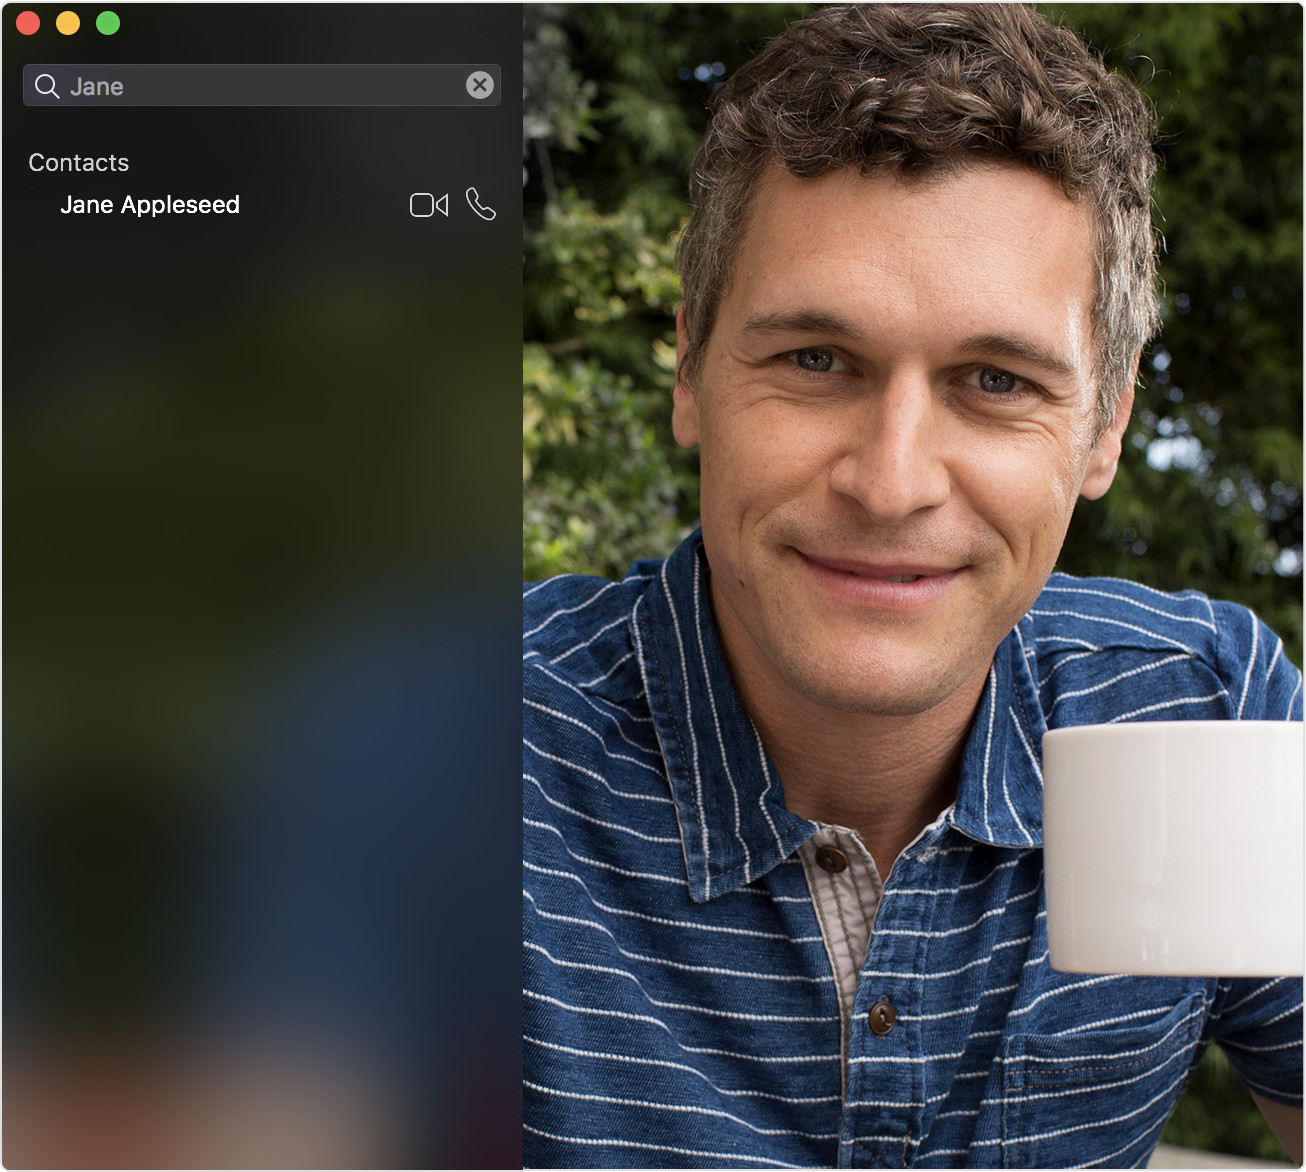 Contacts search in FaceTime app